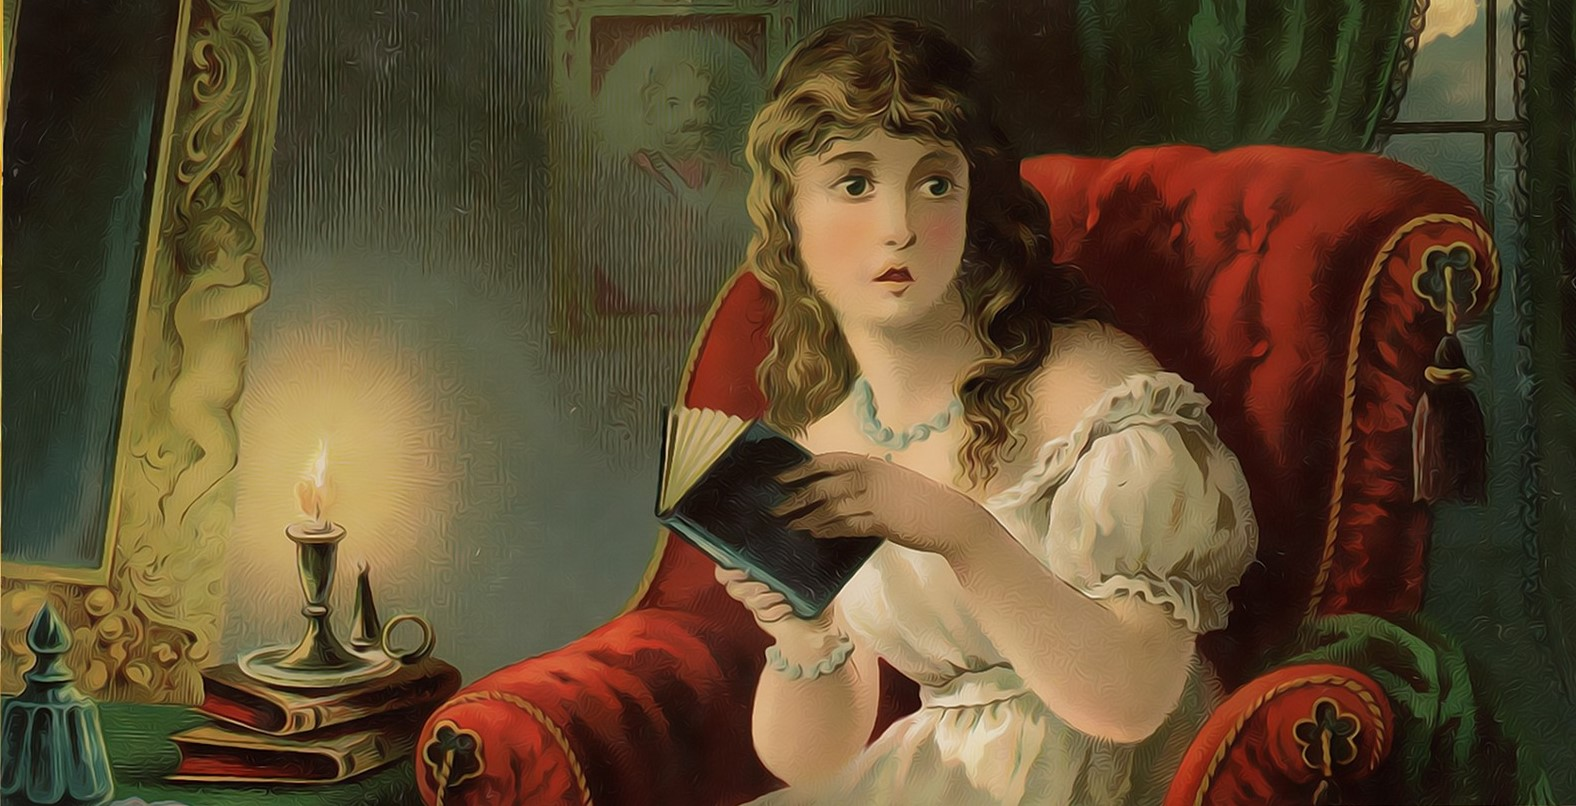 younglady reading a book by candlelight